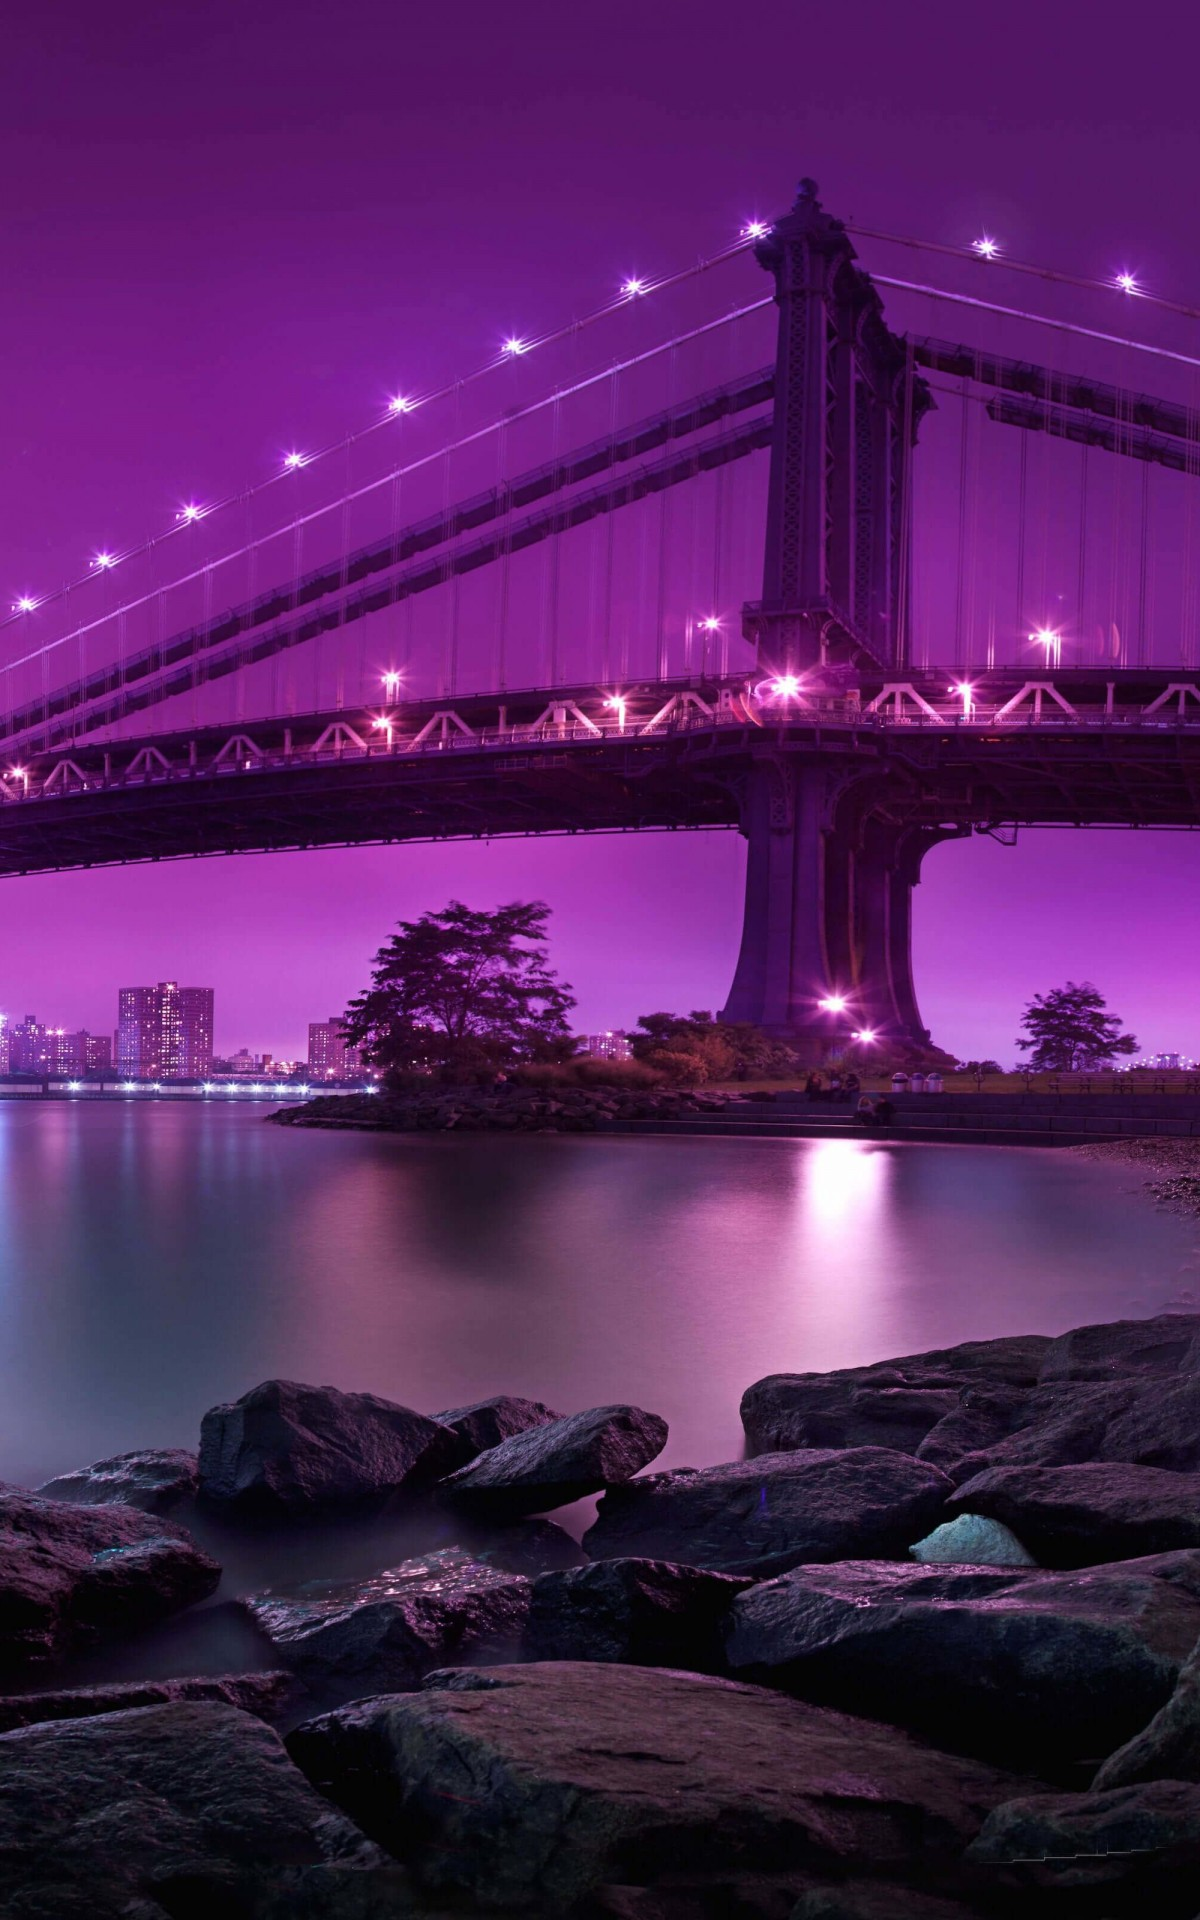 Brooklyn Bridge by night Wallpaper for Amazon Kindle Fire HDX